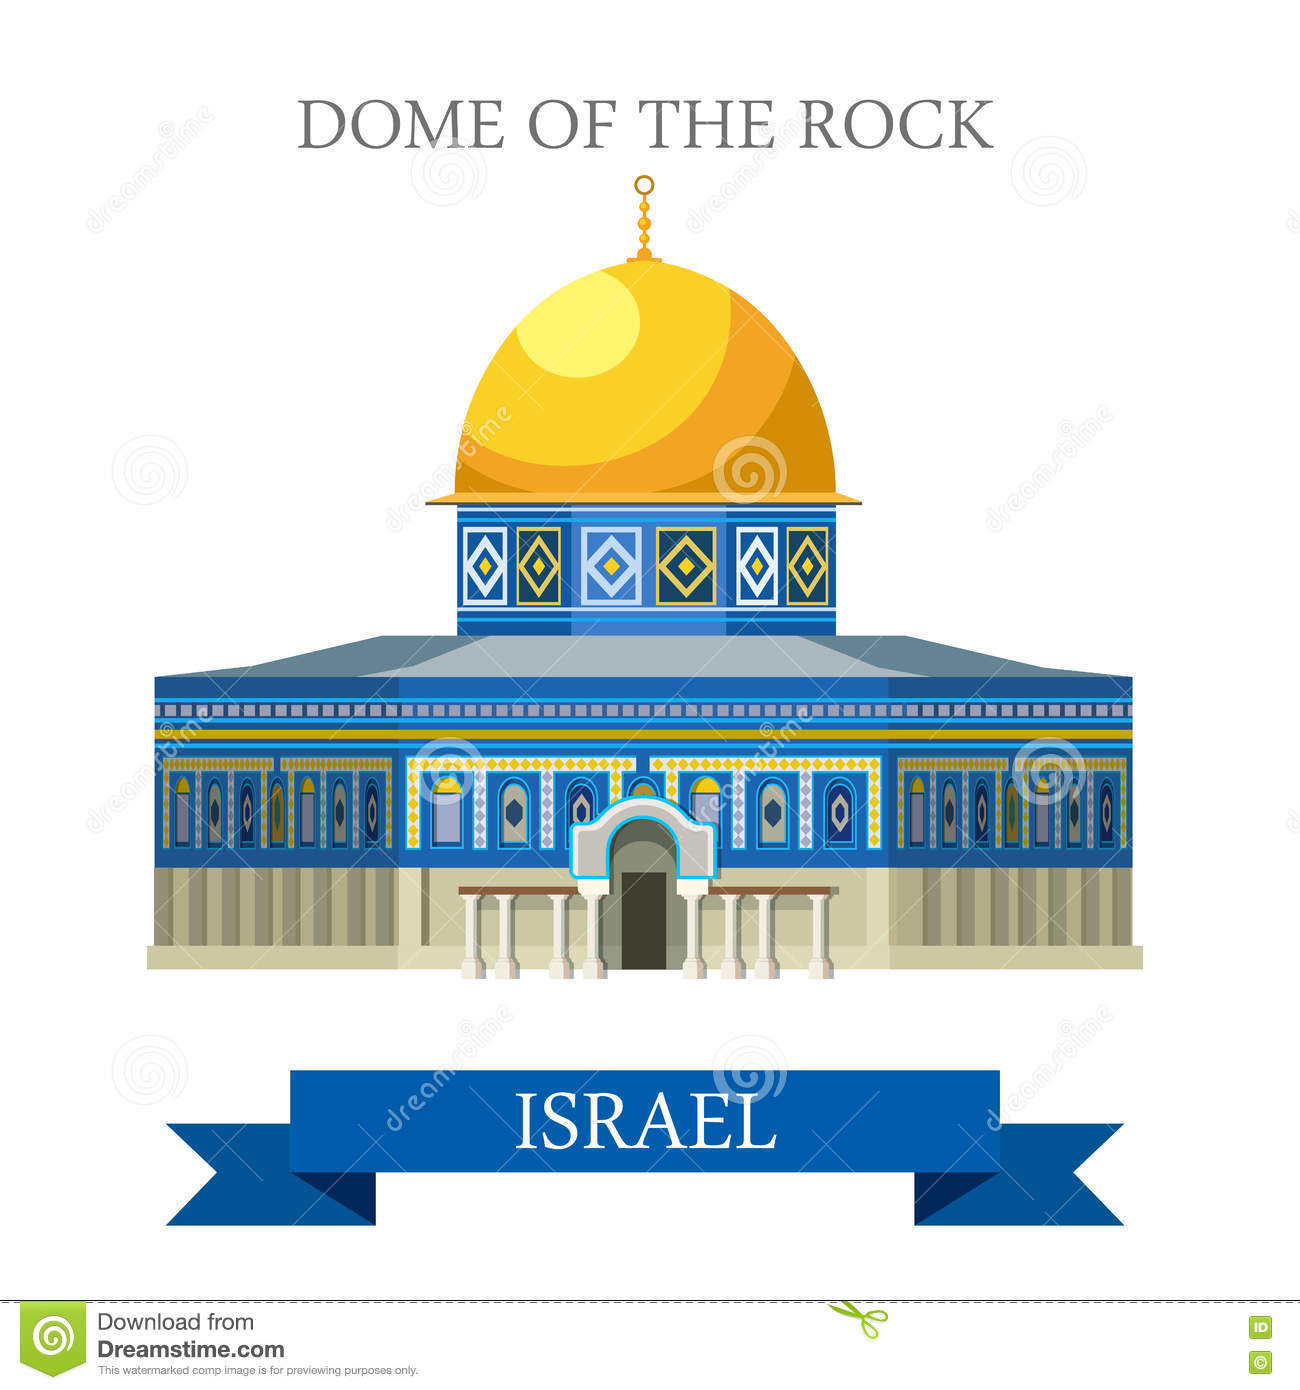 Interior Dome Rock Jerusalem Israel Stock Illustrations.